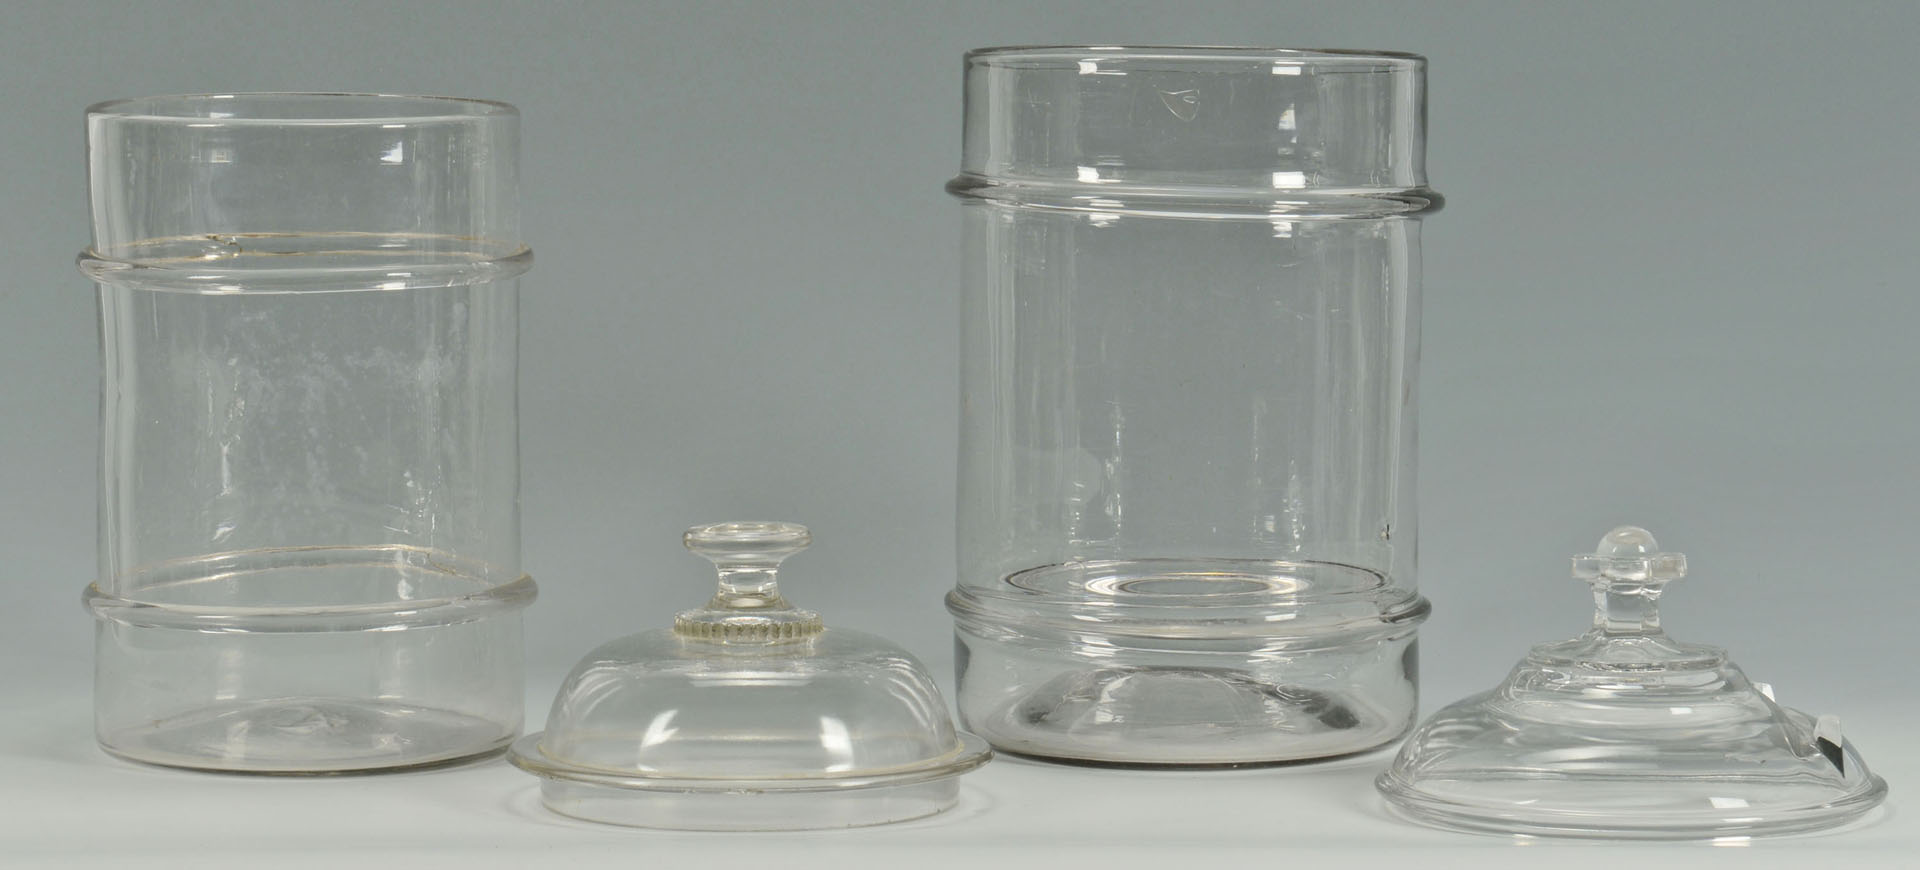 Lot 155: 5 Blown Colorless Glass Canister Jars, 2 bands